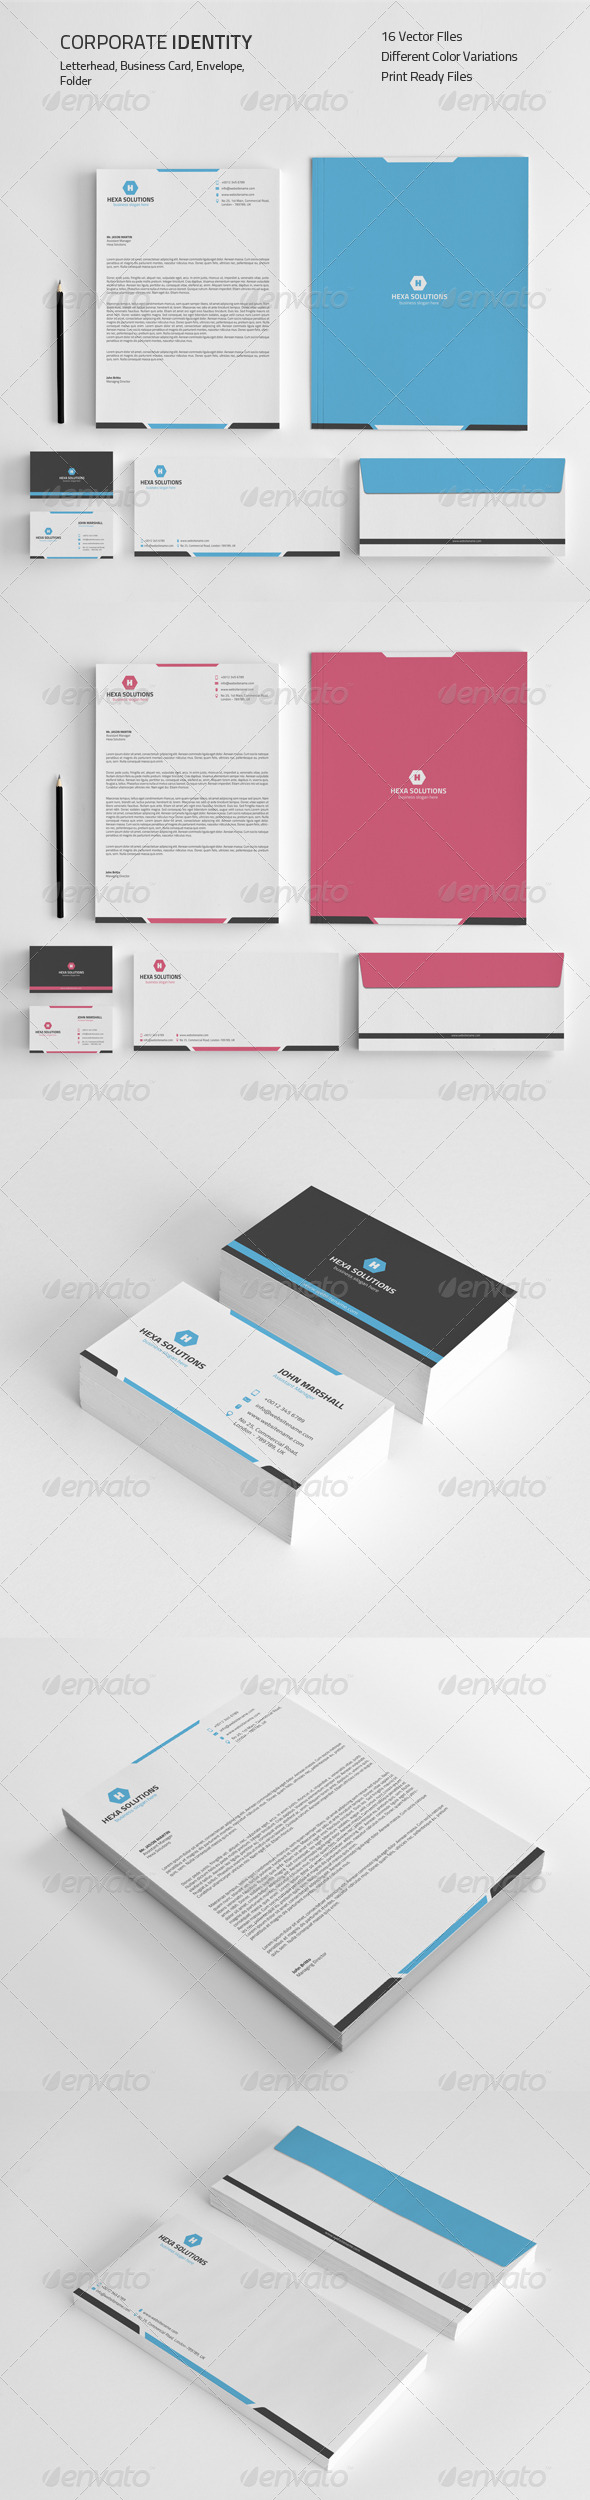 GraphicRiver Corporate Identity 01 8526137